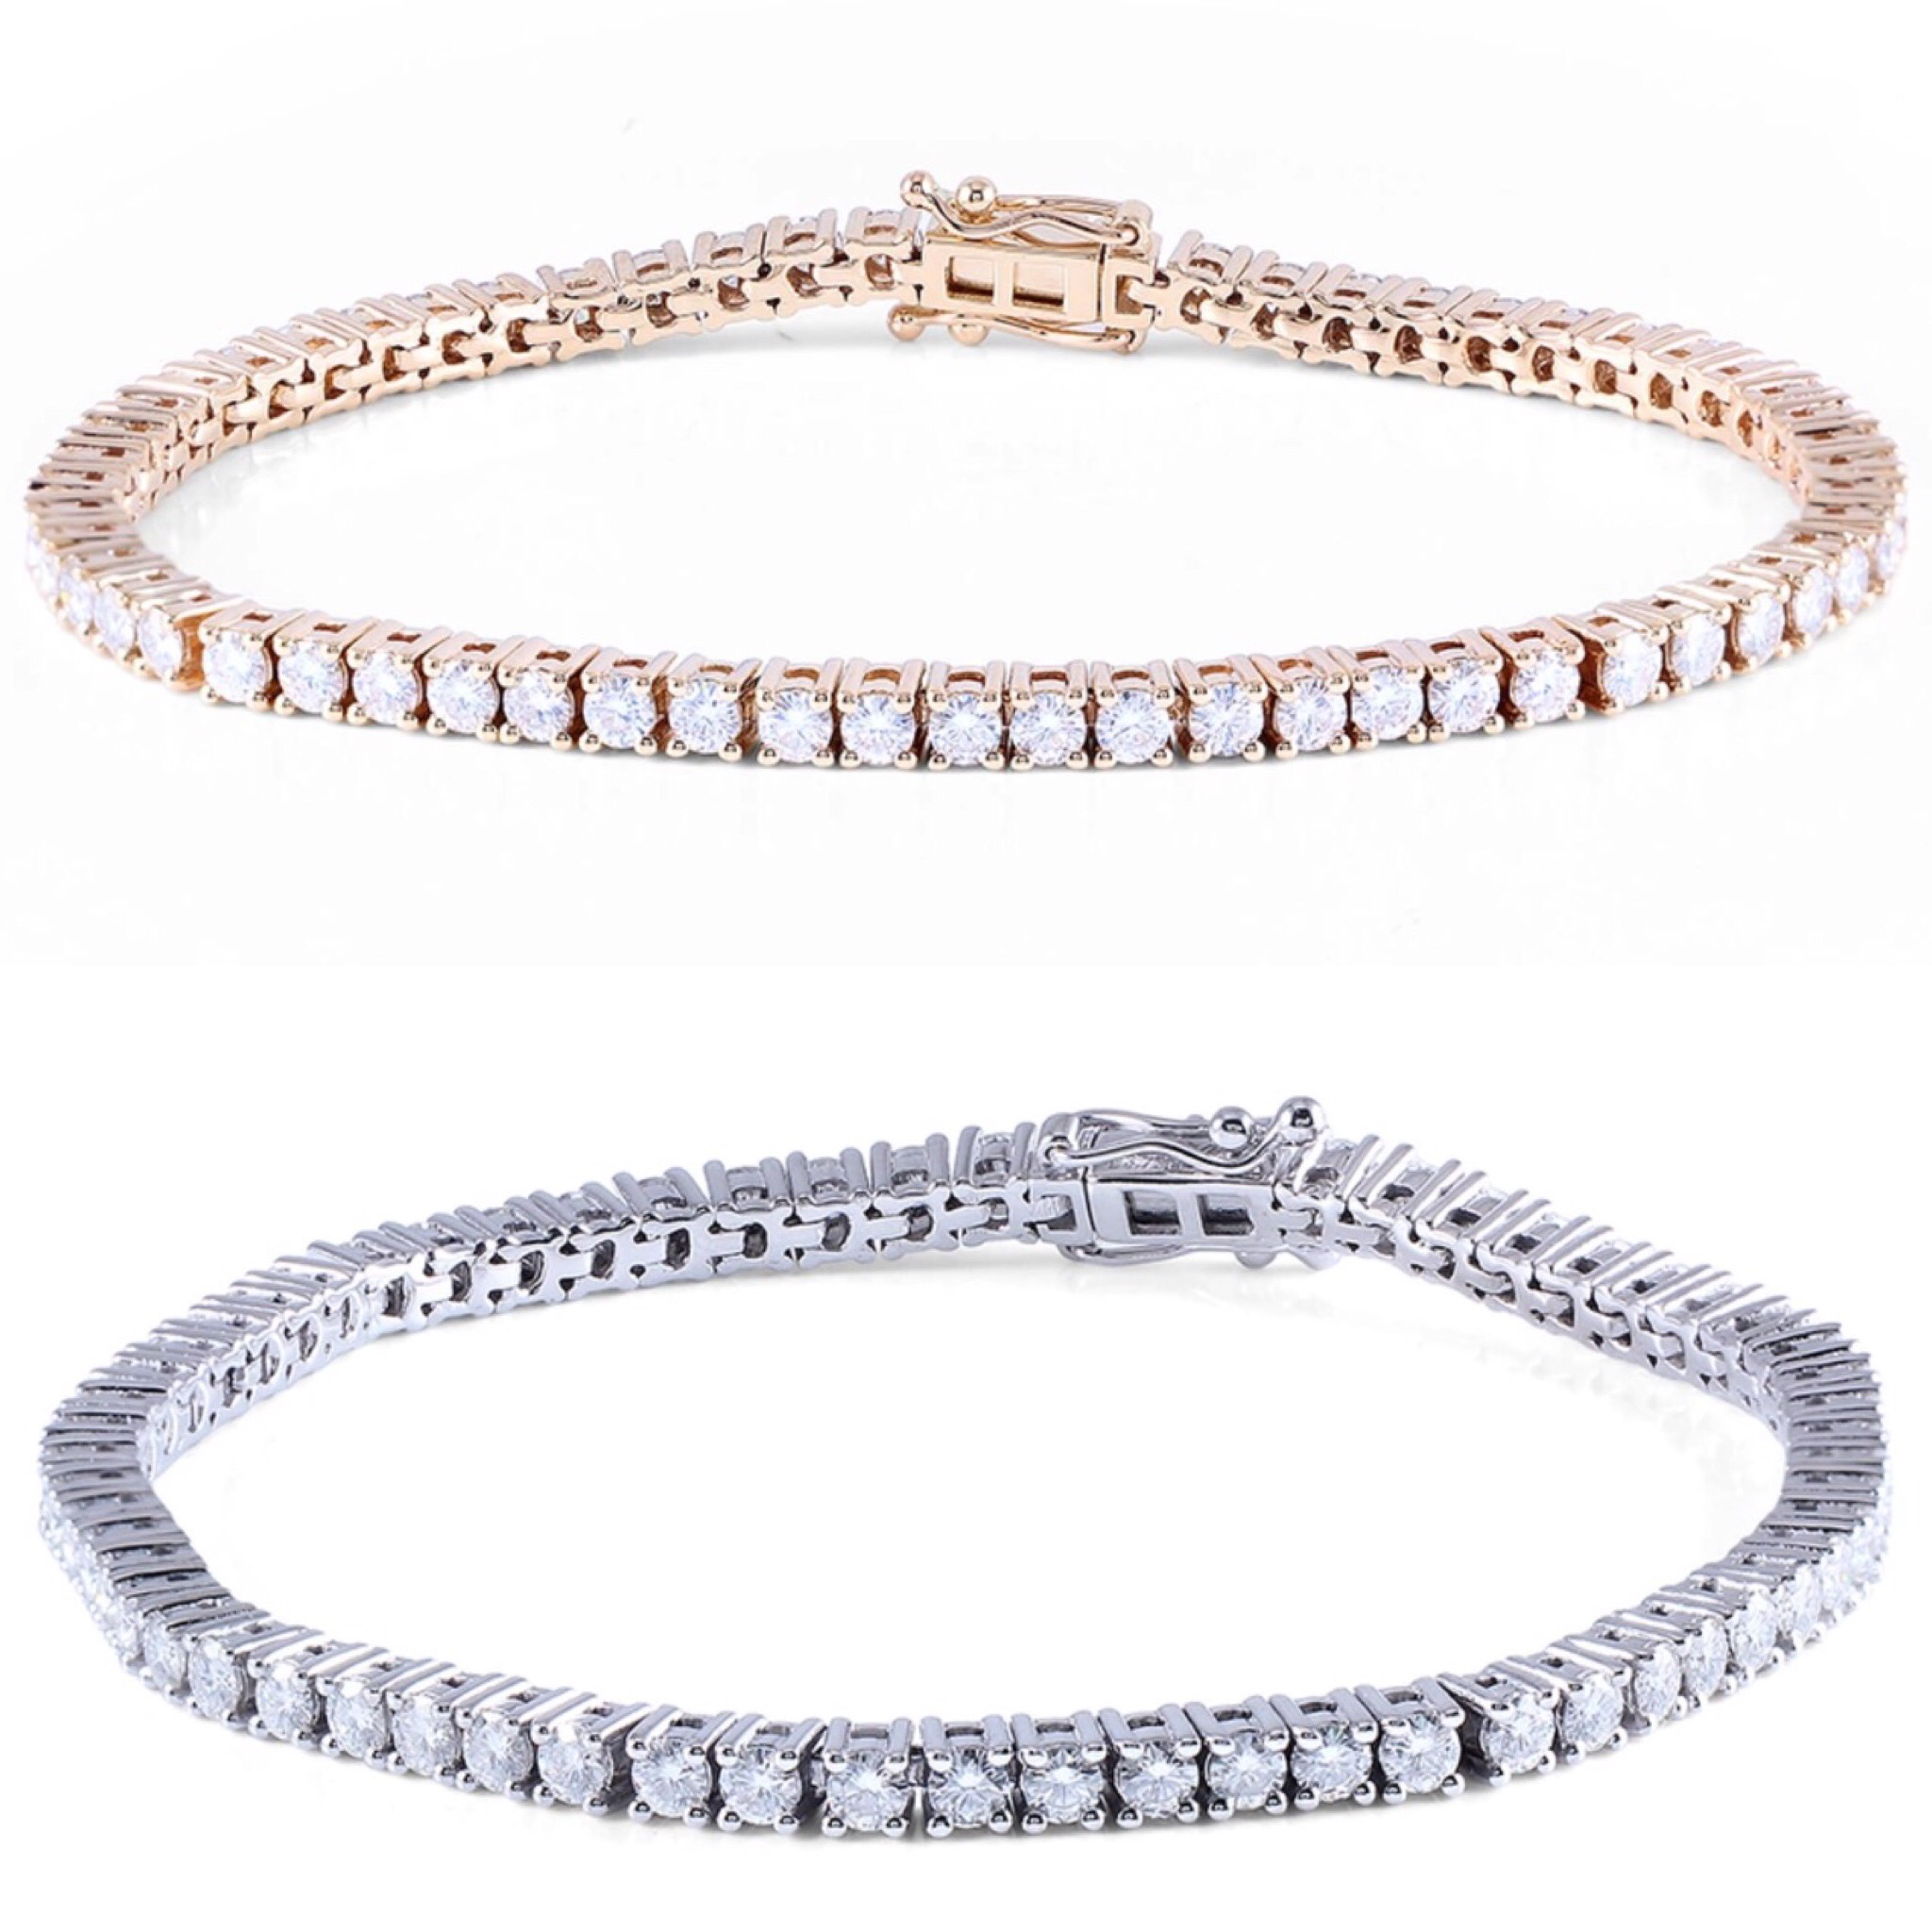 14K White/Yellow Gold 4.08CTW H Color 2.5mm Width Moissanite Simulated Diamond Tennis Bracelet For Women from Madaame